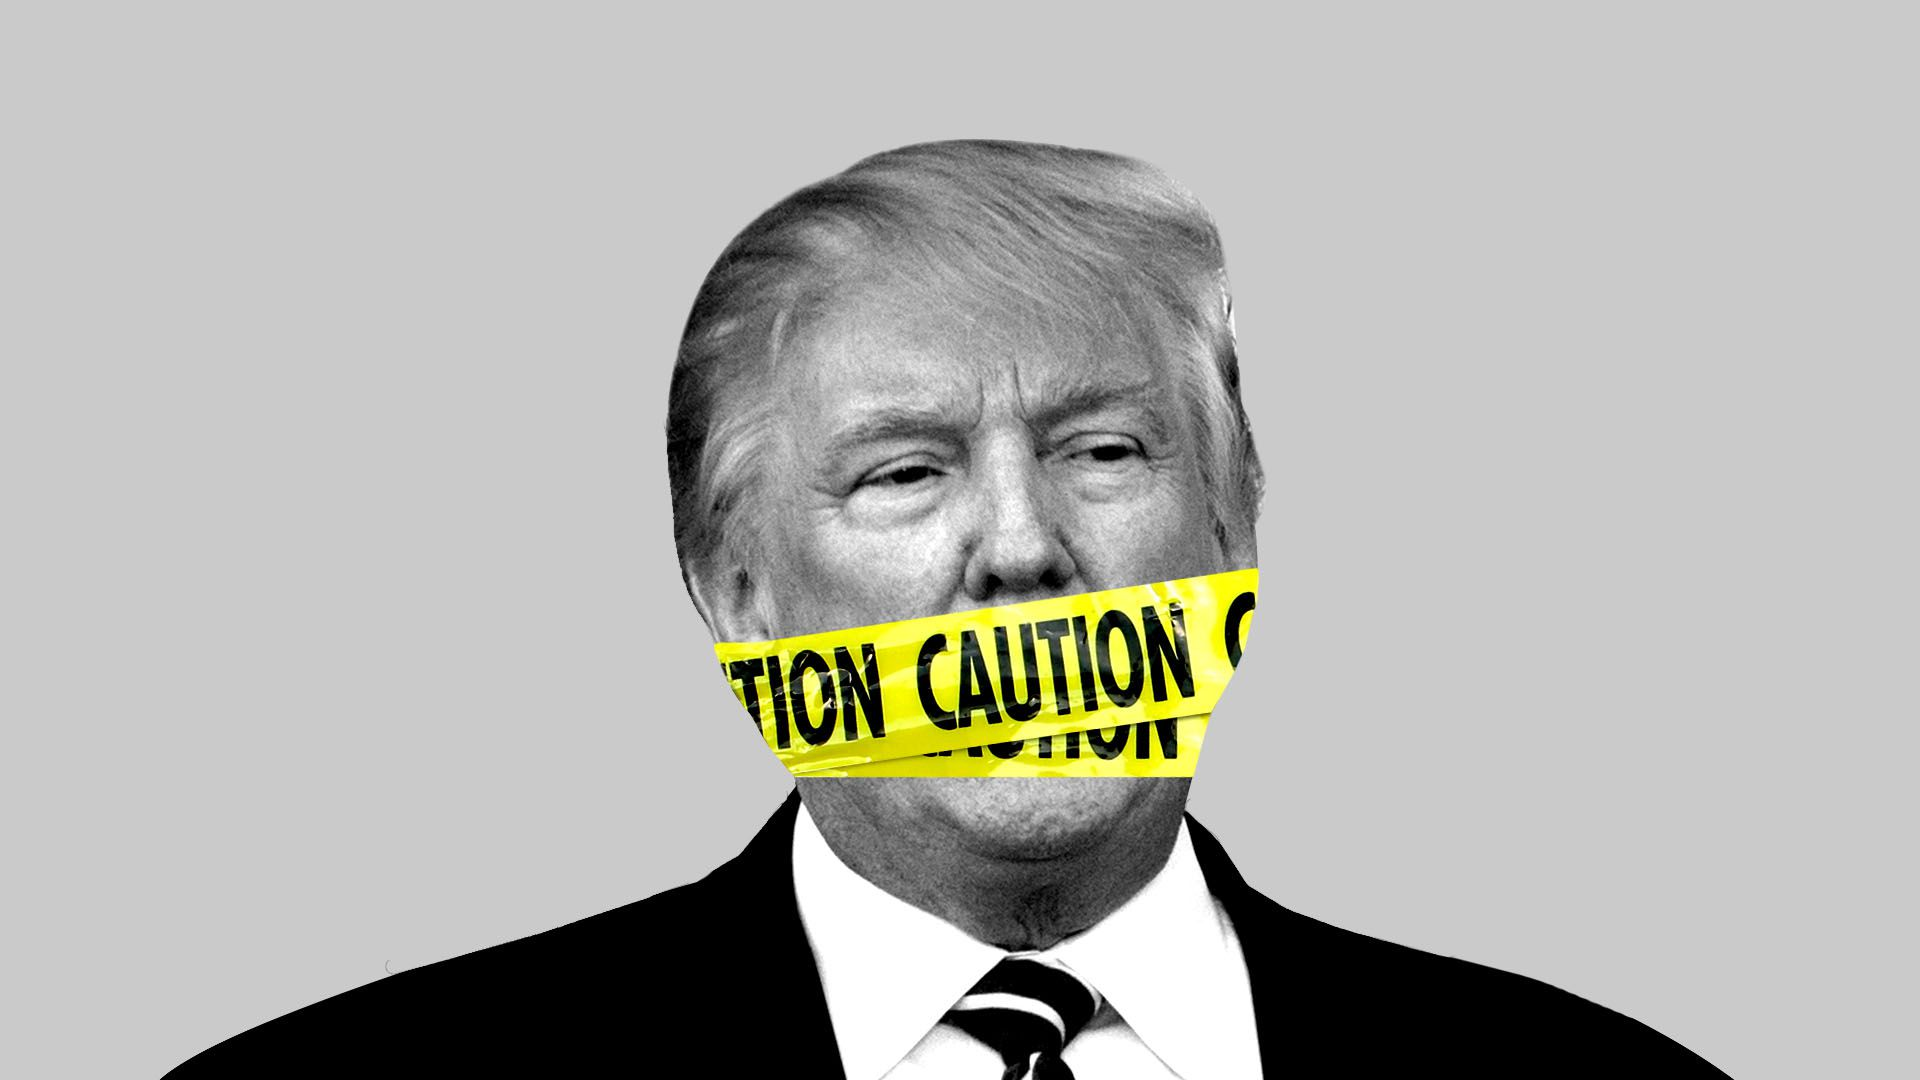 Illustration of Trump with caution tape over his mouth